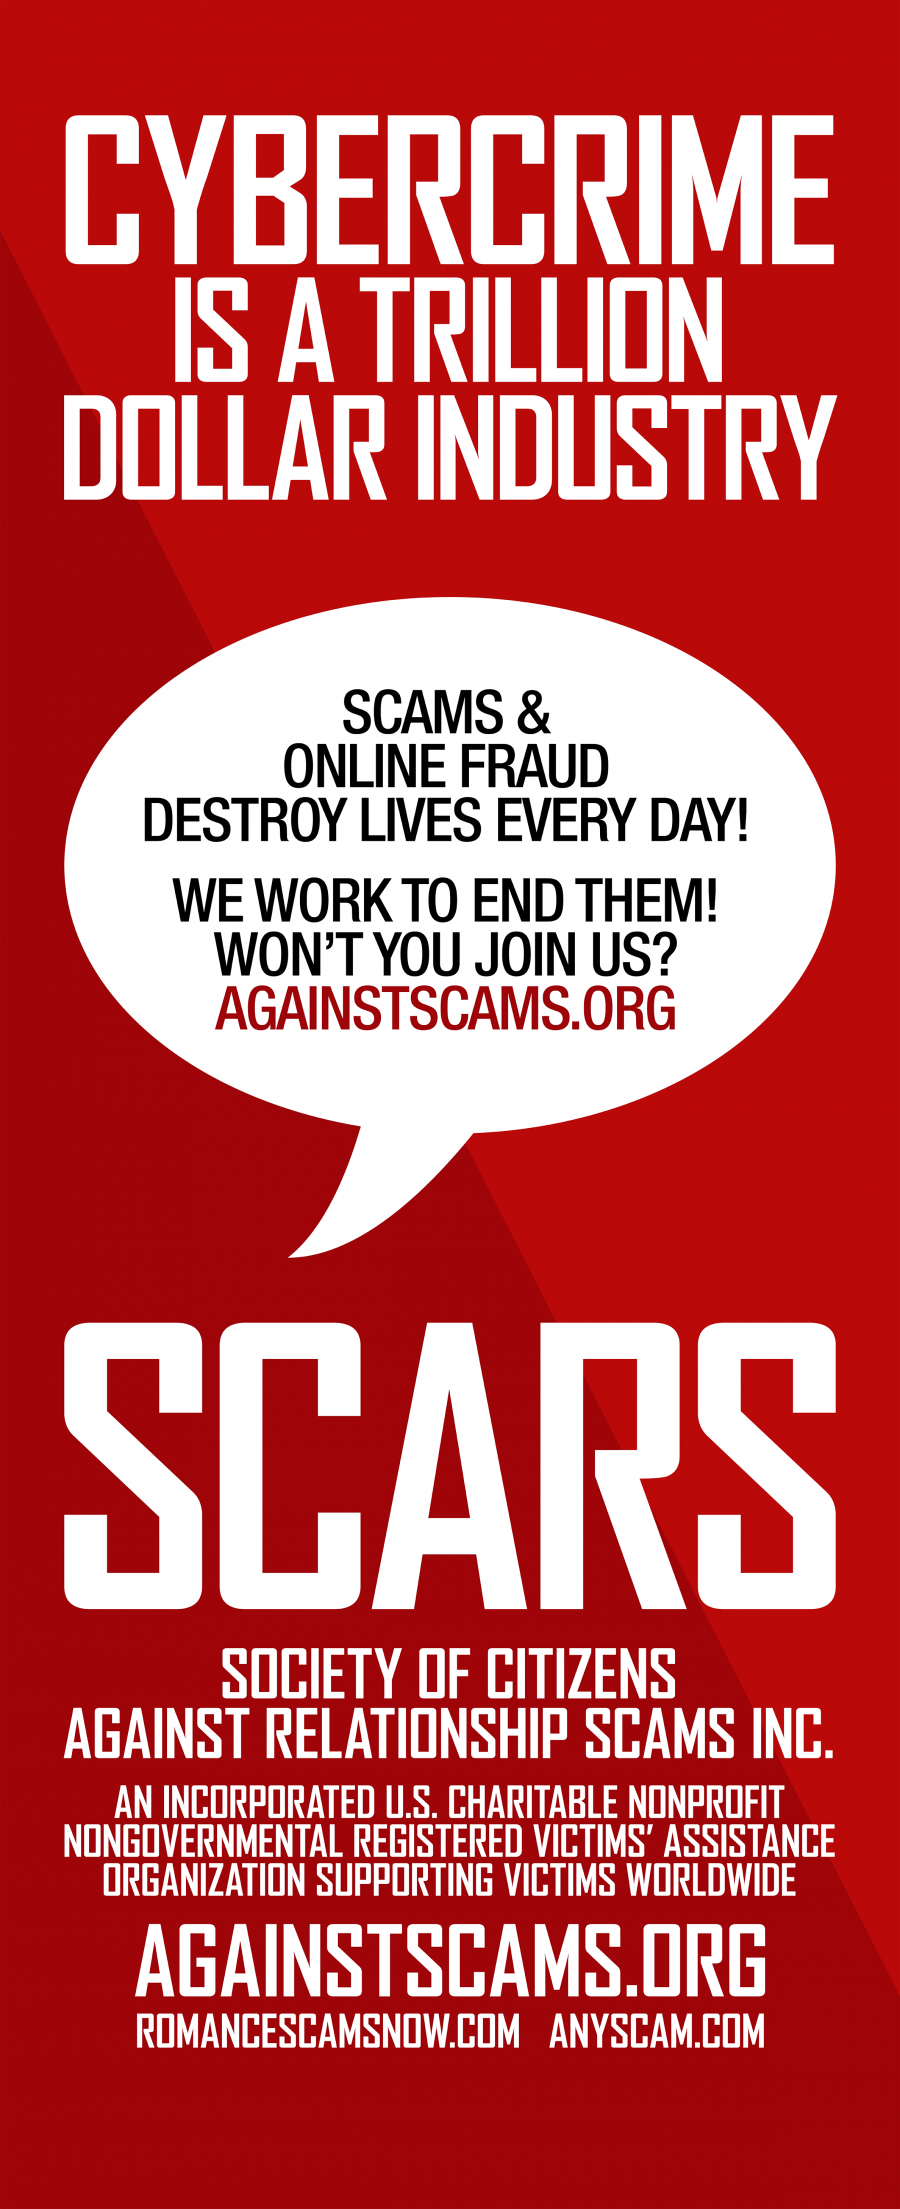 scars-ces-2019-pull-up-sign-red-background